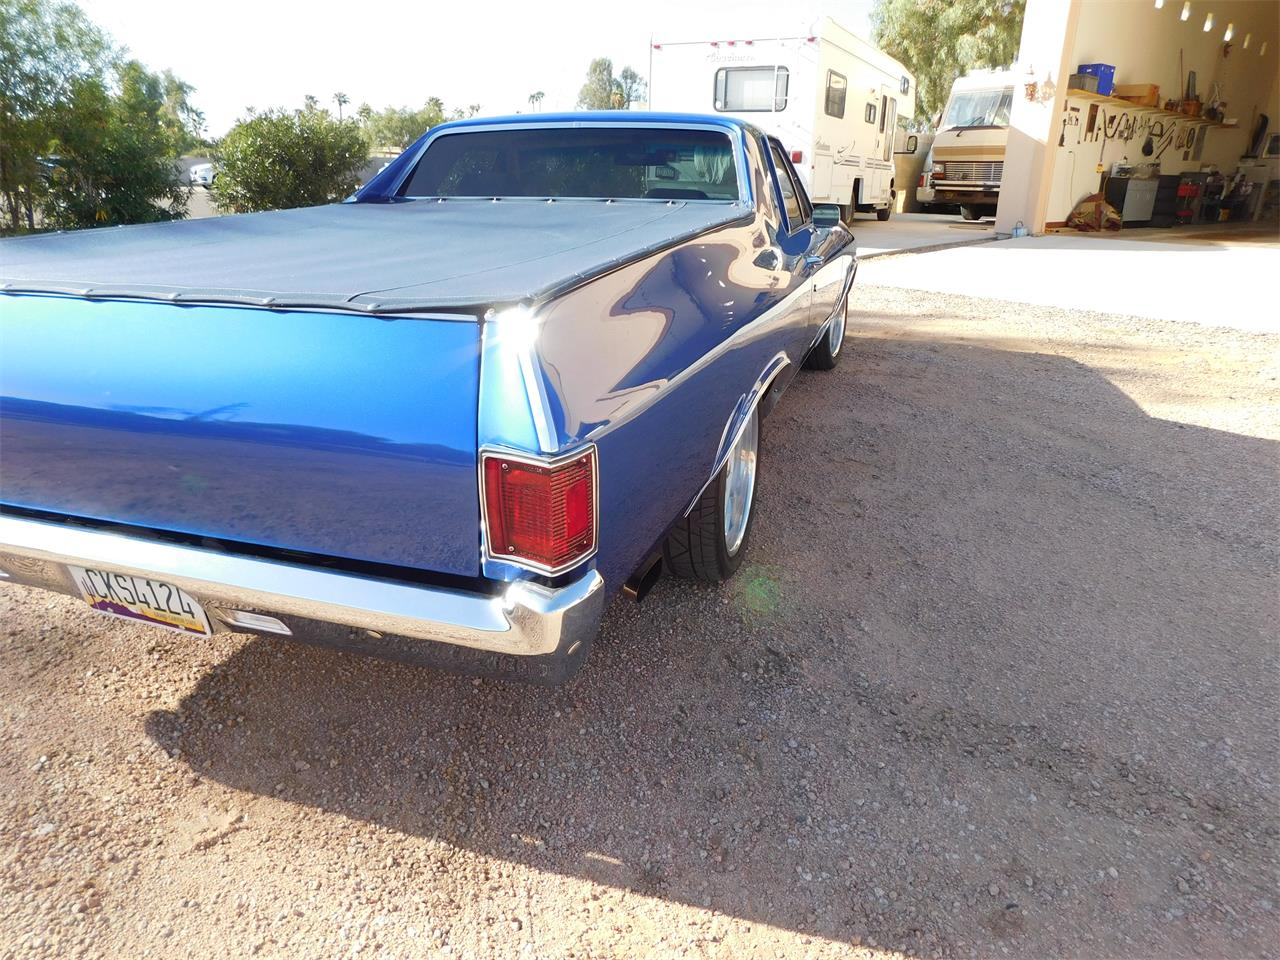 1970 Chevrolet El Camino SS (CC-1274905) for sale in Scottsdale, Arizona